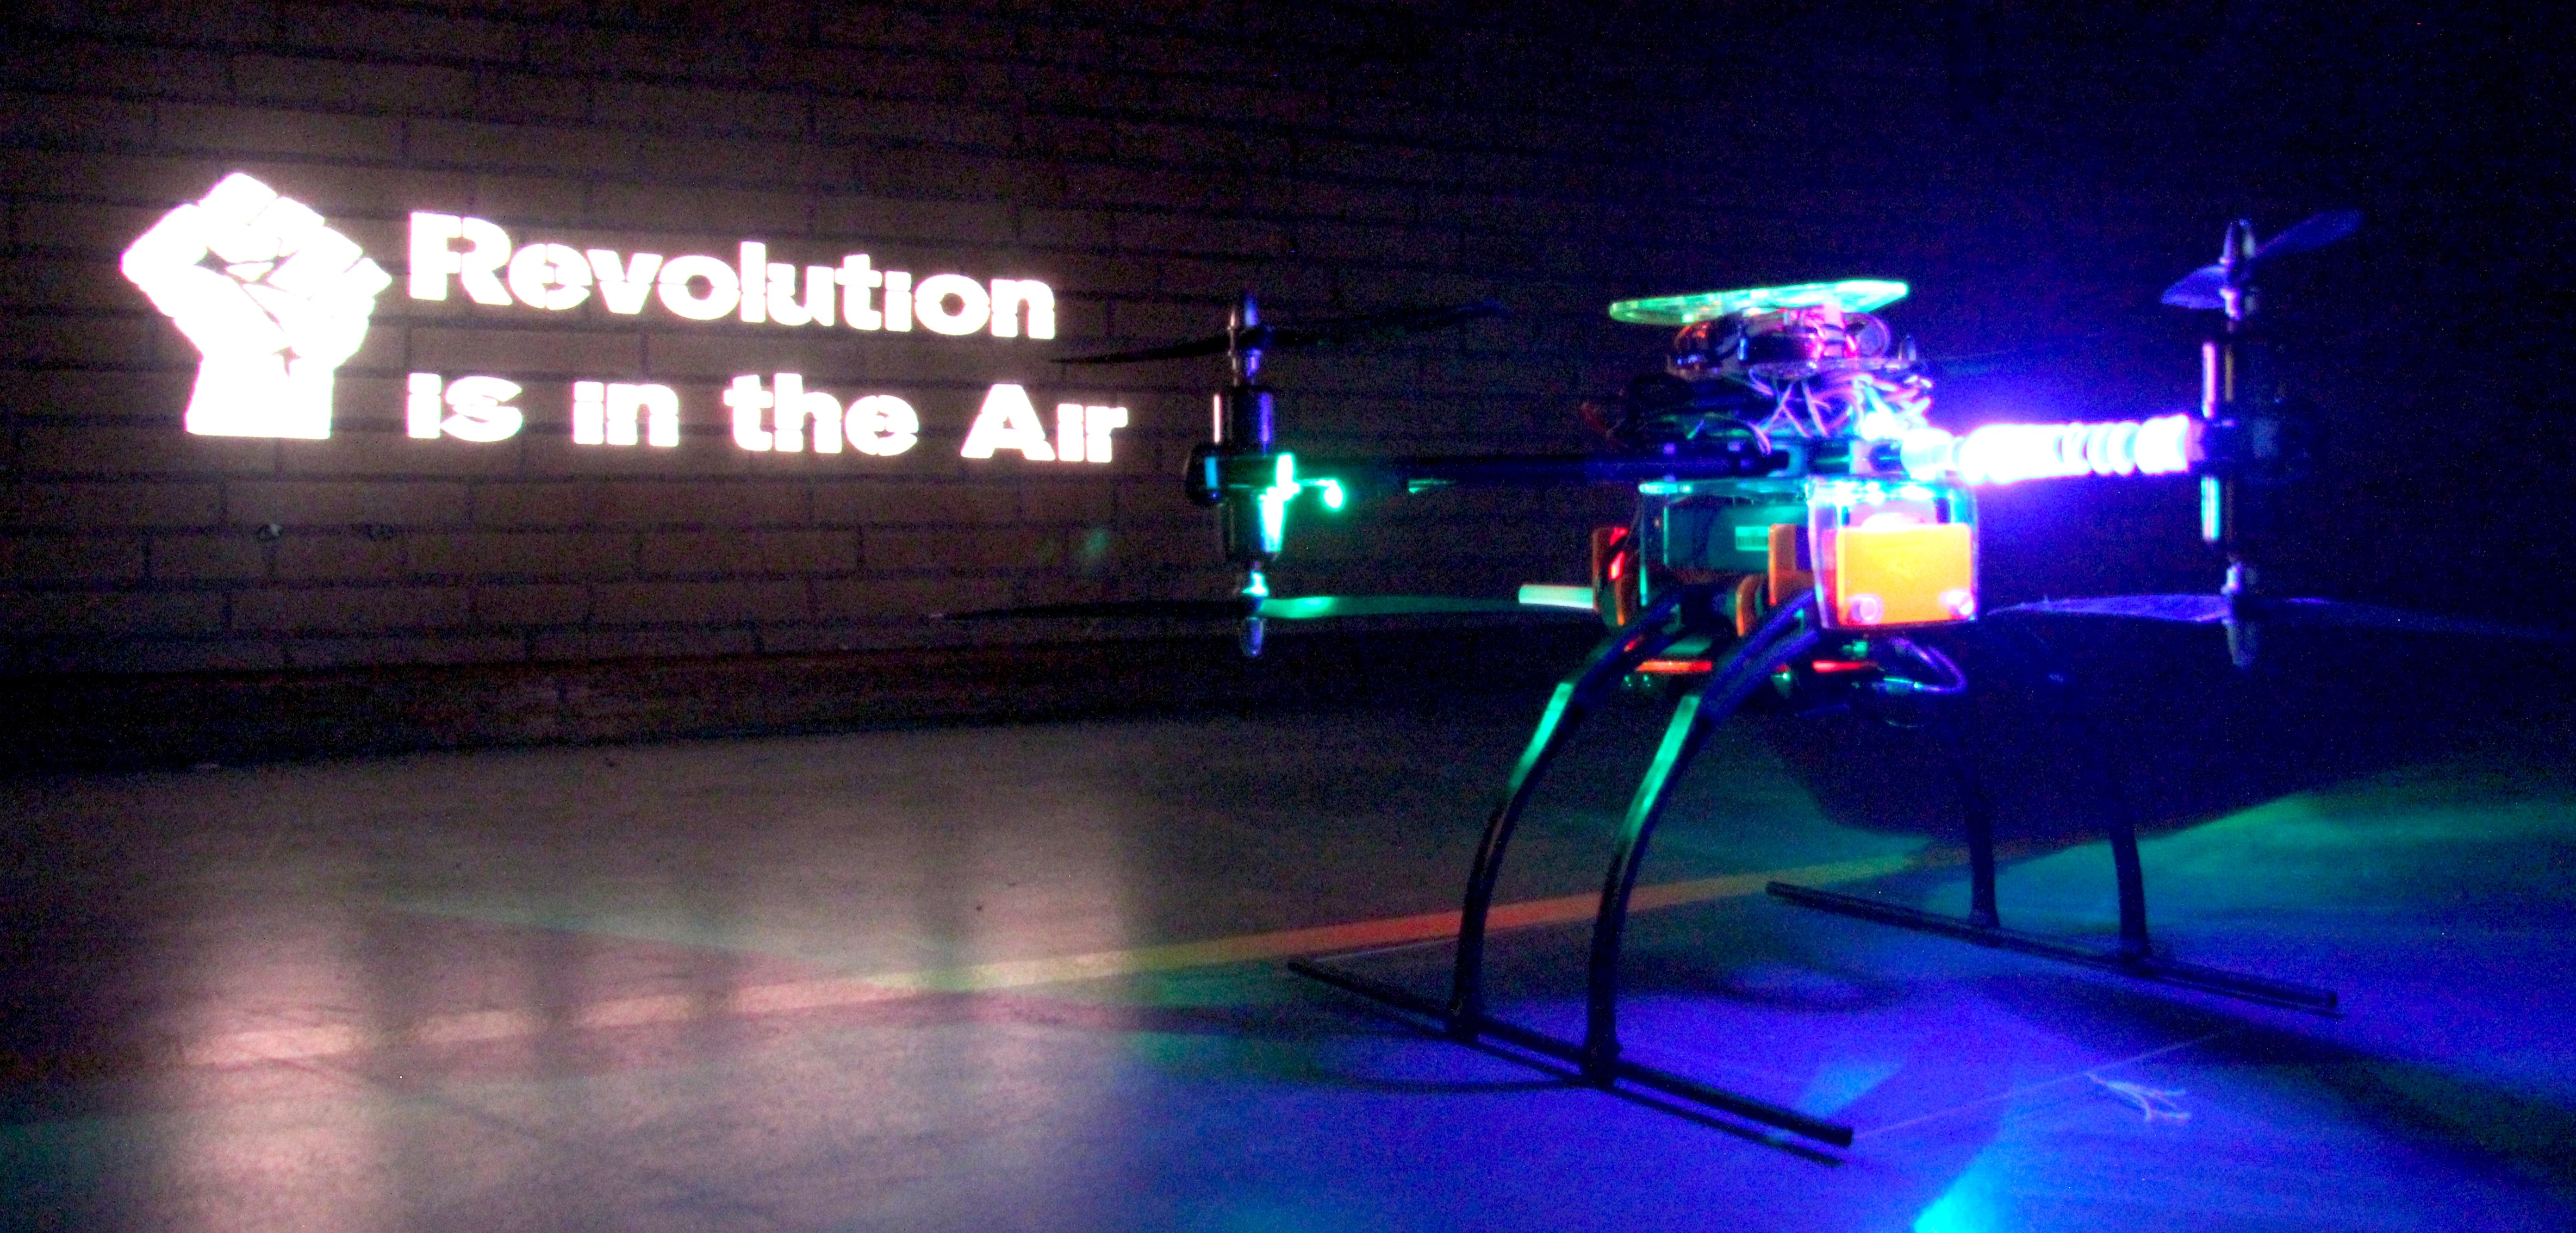 revolutiondrone-2